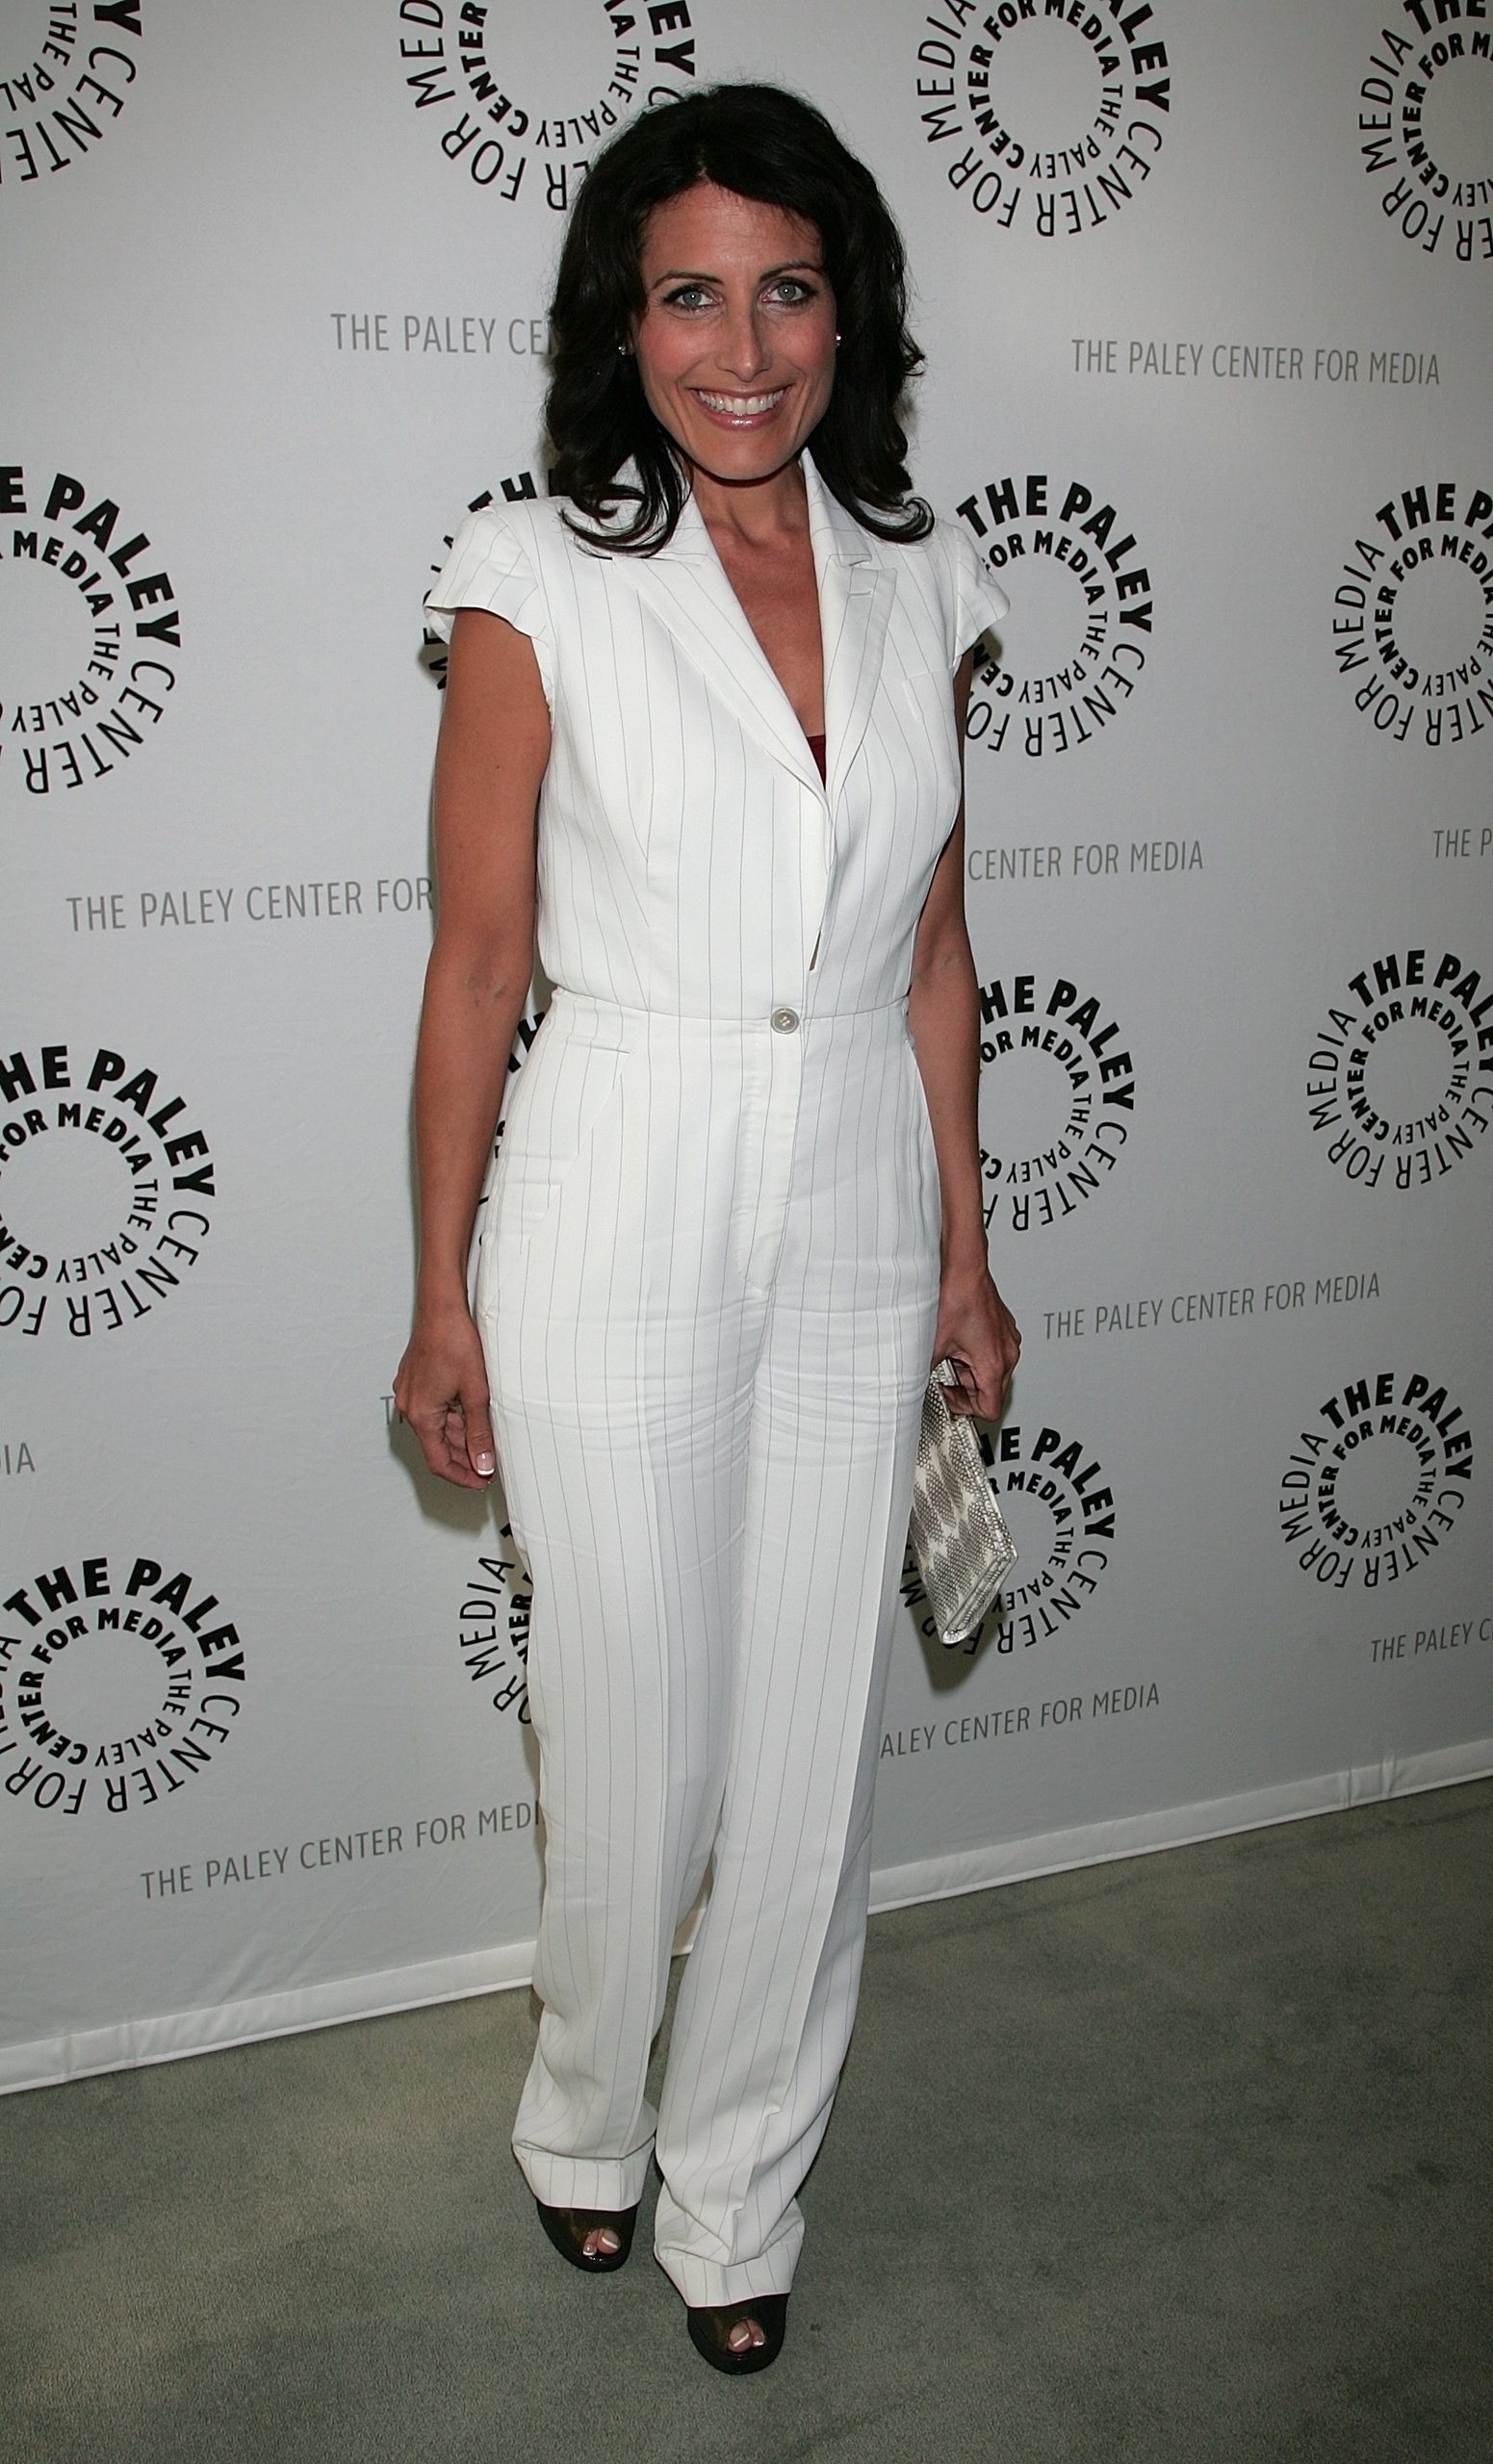 Lisa @ the Paley Center in Los Angeles